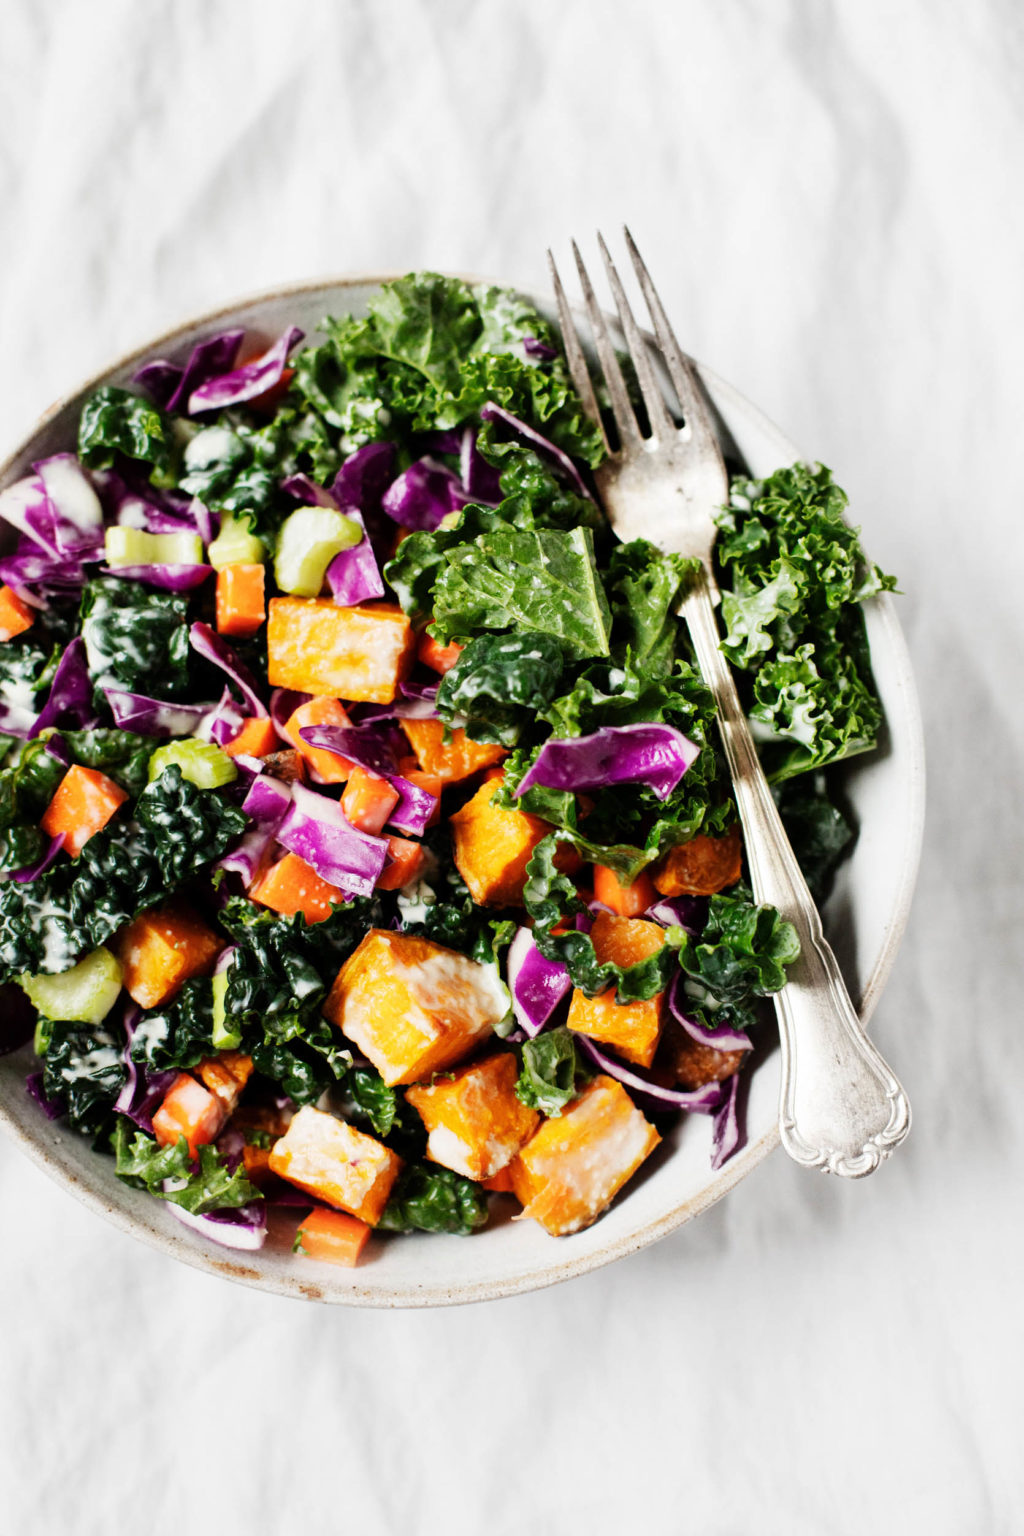 A vibrant bowl of vegetables has been topped with a creamy dressing. A fork accompanies the colorful meal.